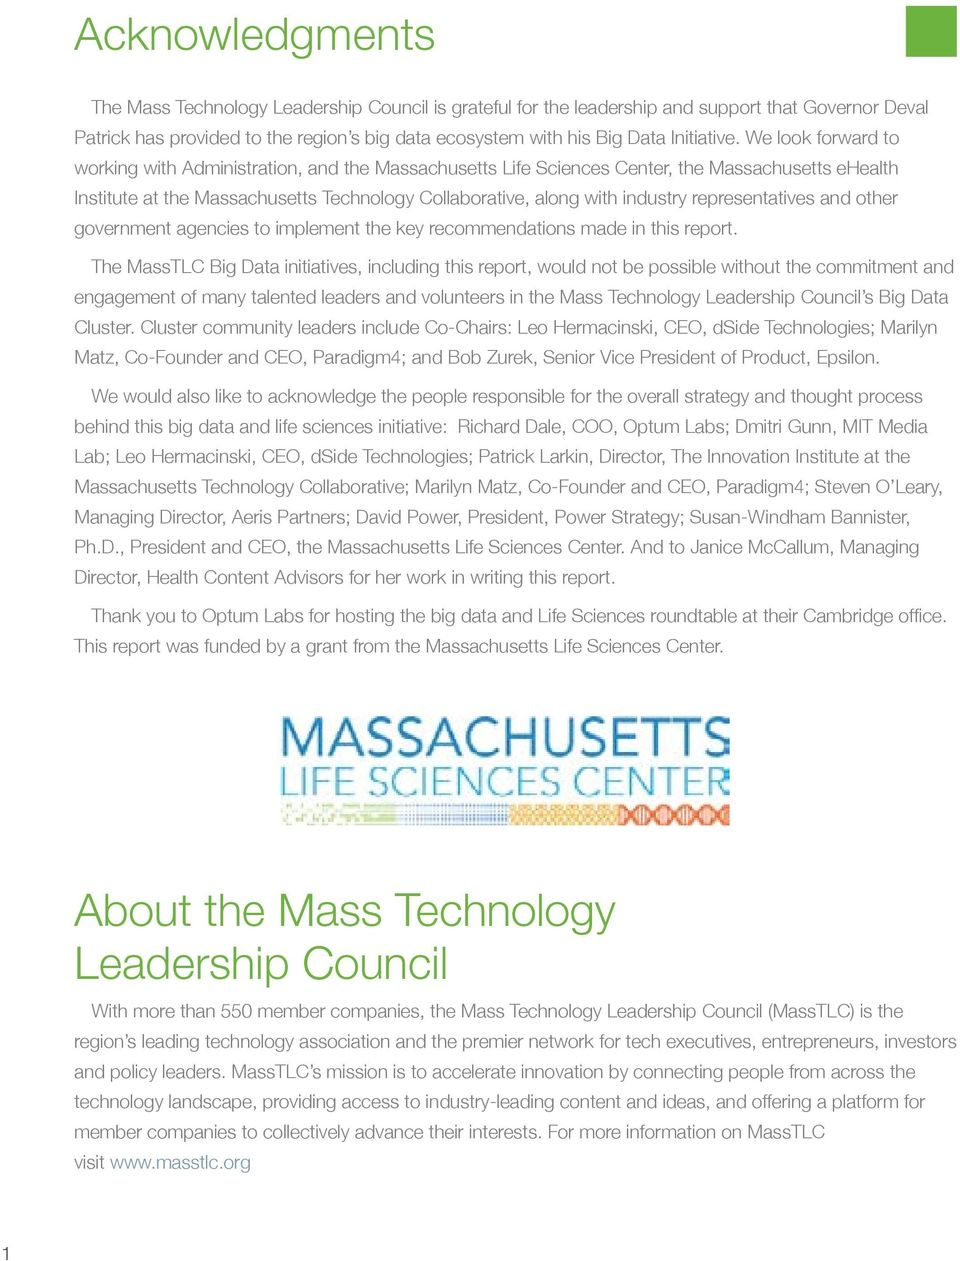 We look forward to working with Administration, and the Massachusetts Life Sciences Center, the Massachusetts ehealth Institute at the Massachusetts Technology Collaborative, along with industry